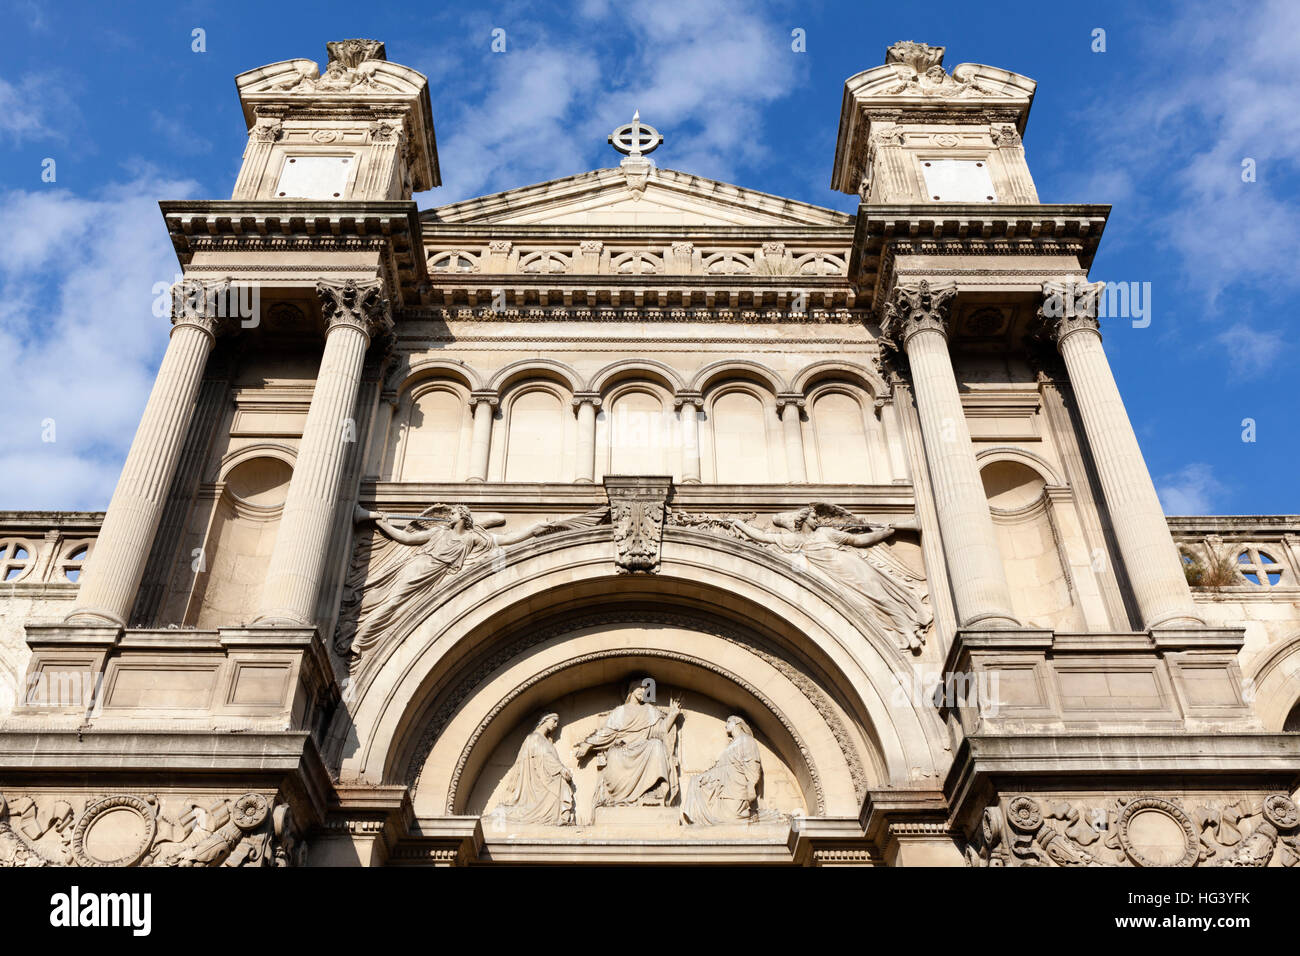 View from below of main facade of the La Madeleine church, Aix-en-Provence, France. - Stock Image